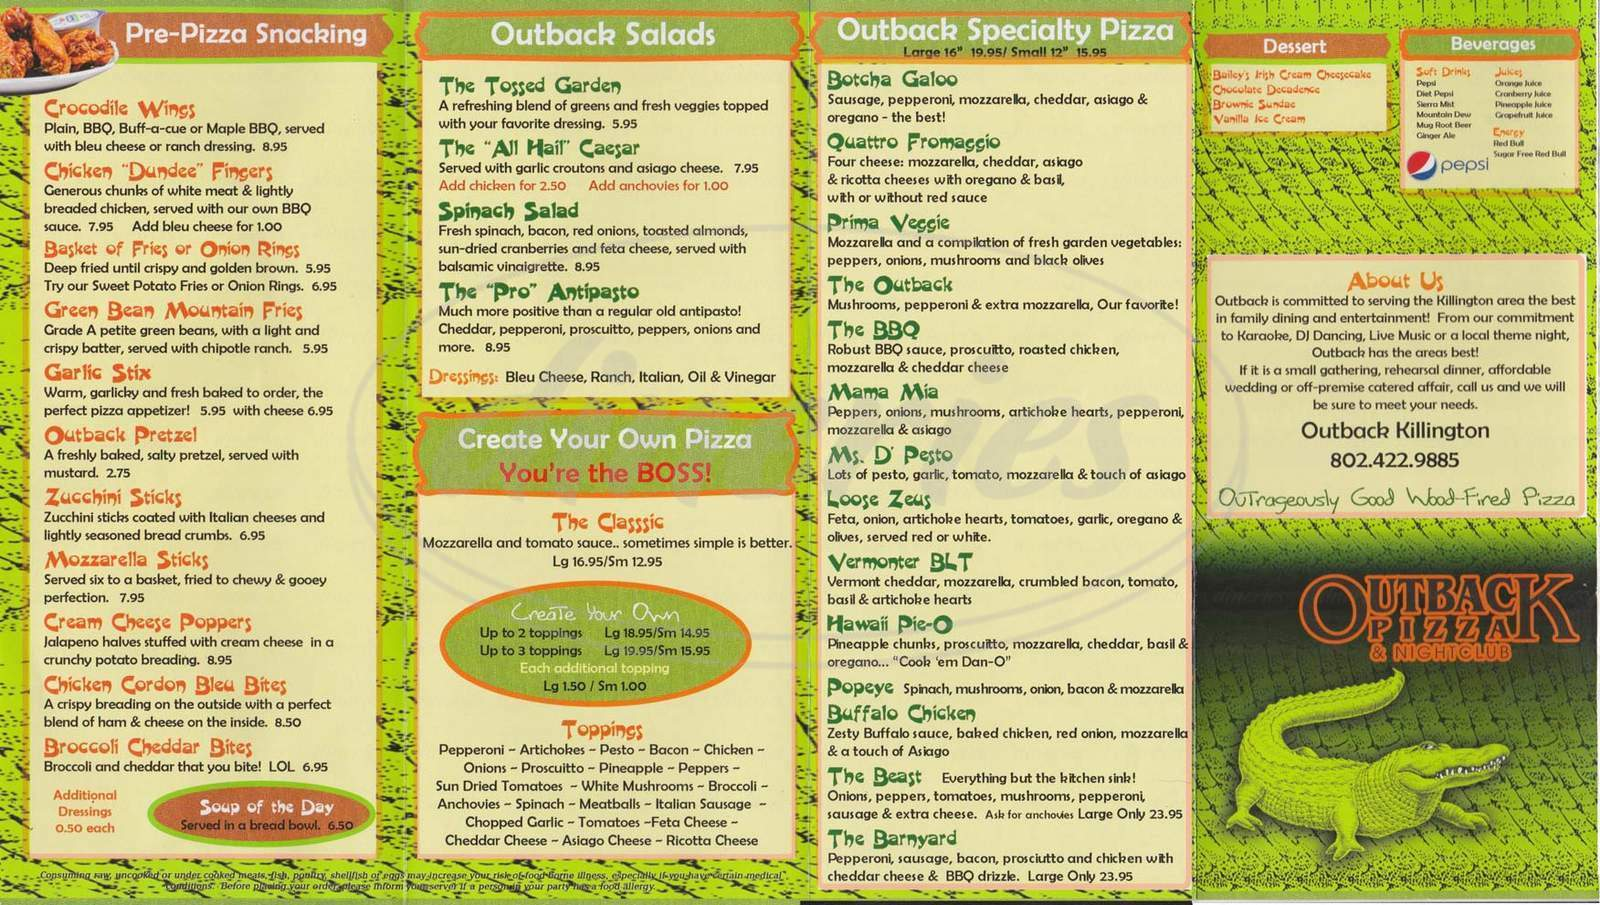 menu for Outback Pizza & Groceries